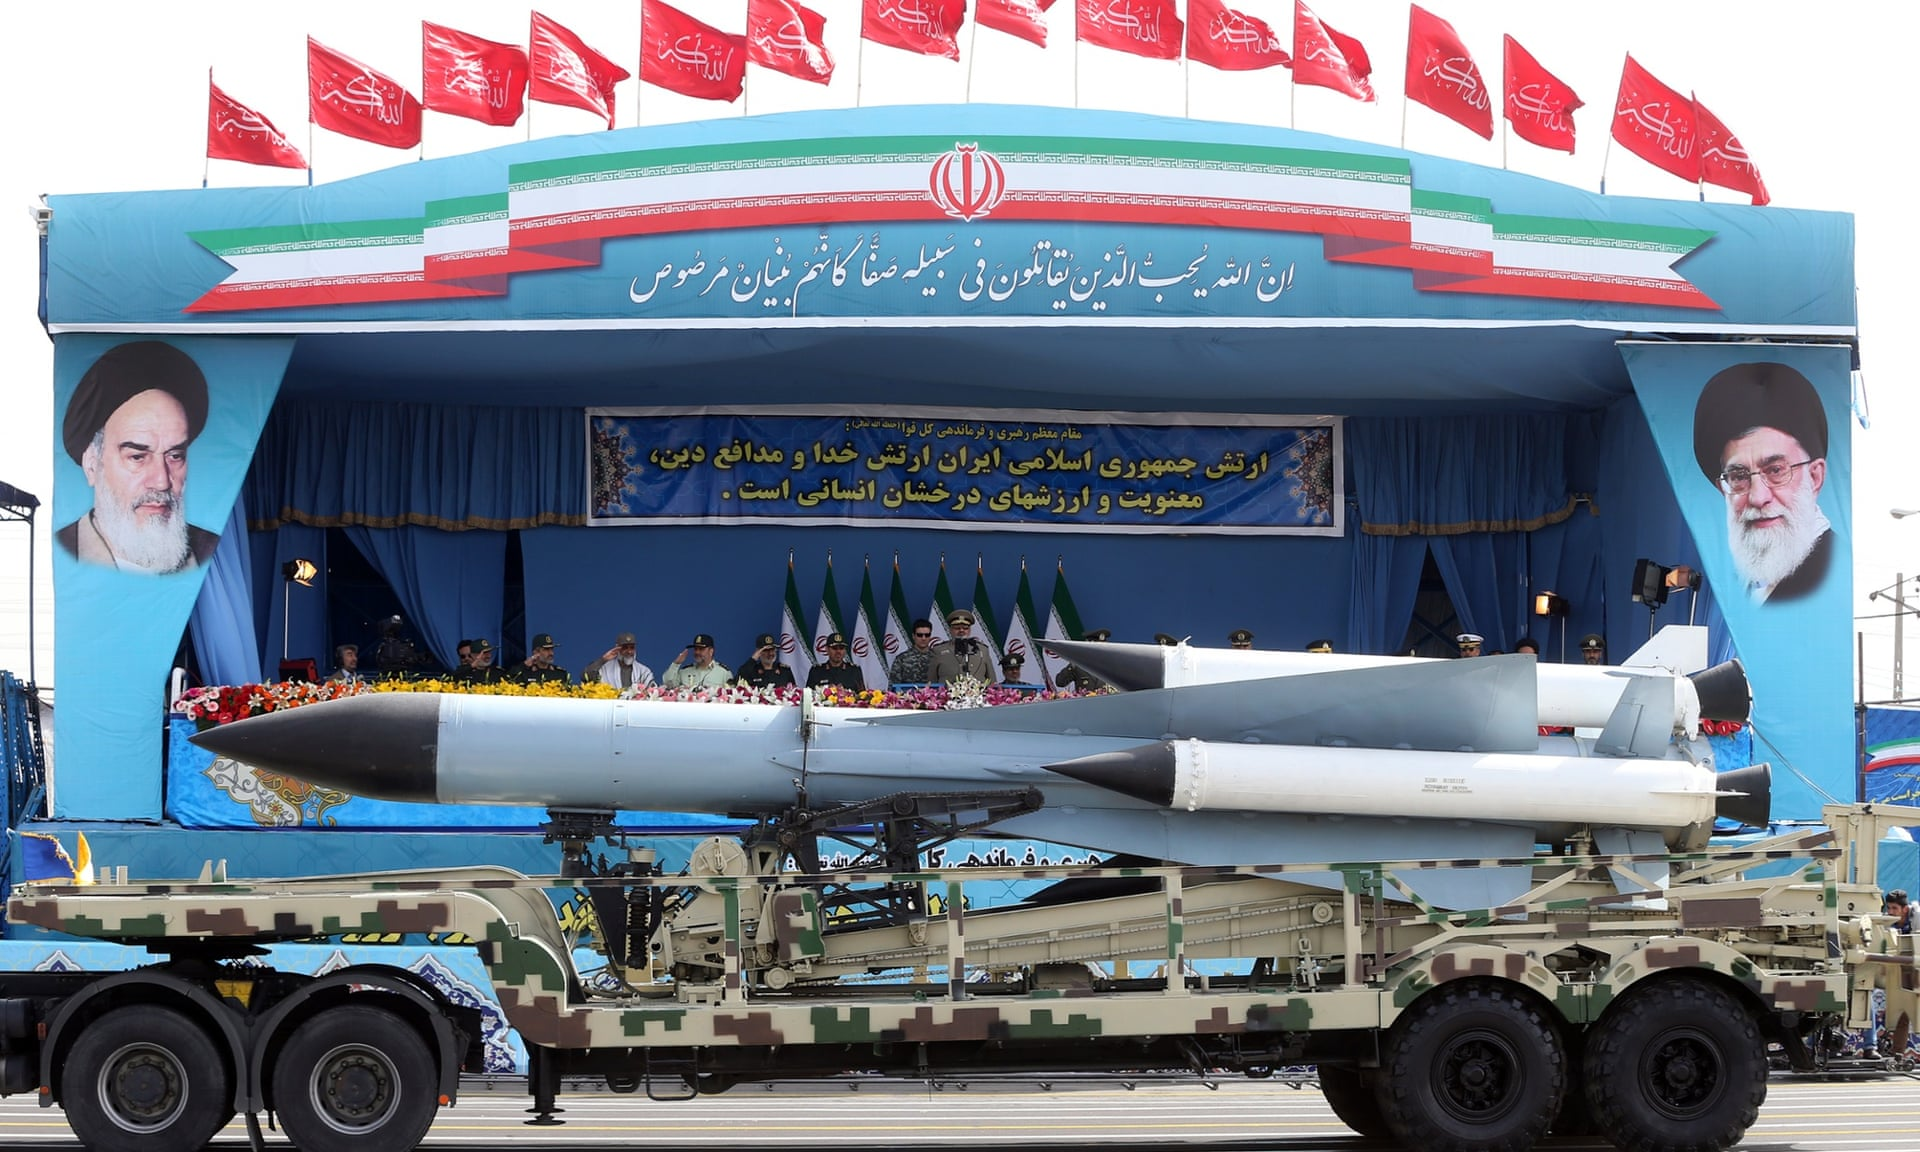 Missiles are displayed by the Iranian army in a military parade marking National Army Day just outside Tehran